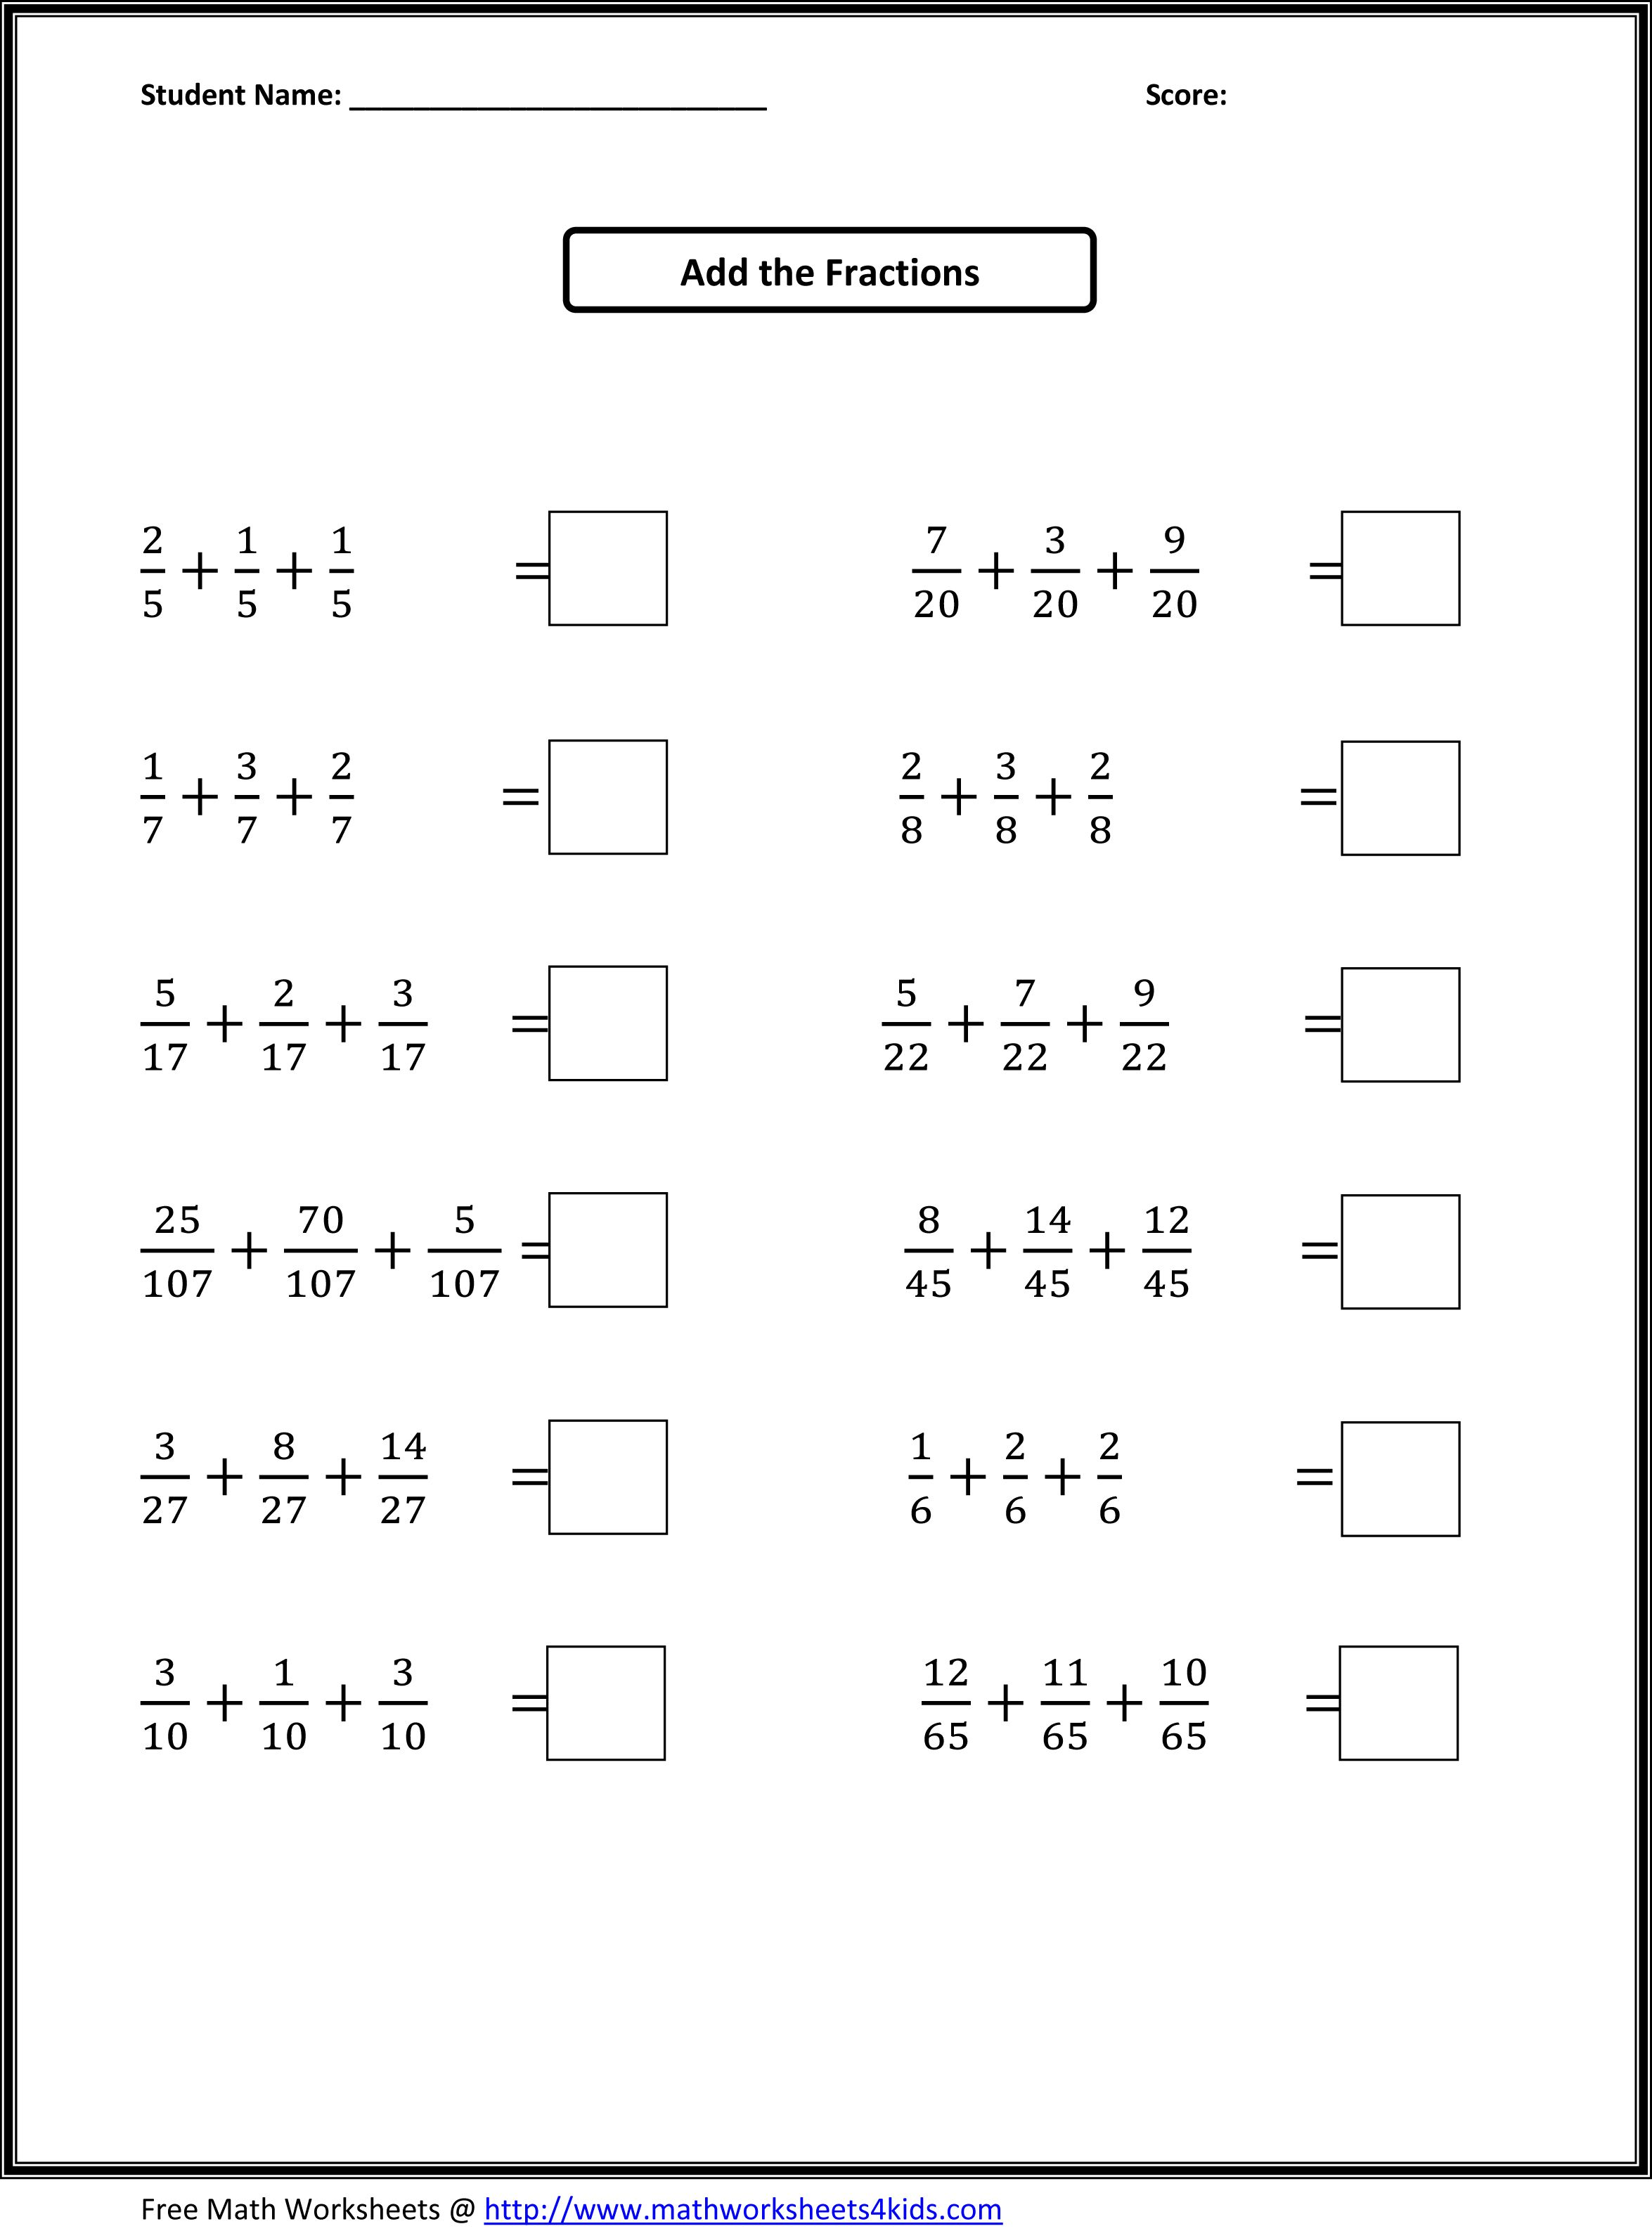 Printables Fourth Grade Math Worksheets 1000 images about math worksheets on pinterest 4th grade geometry and fourth math